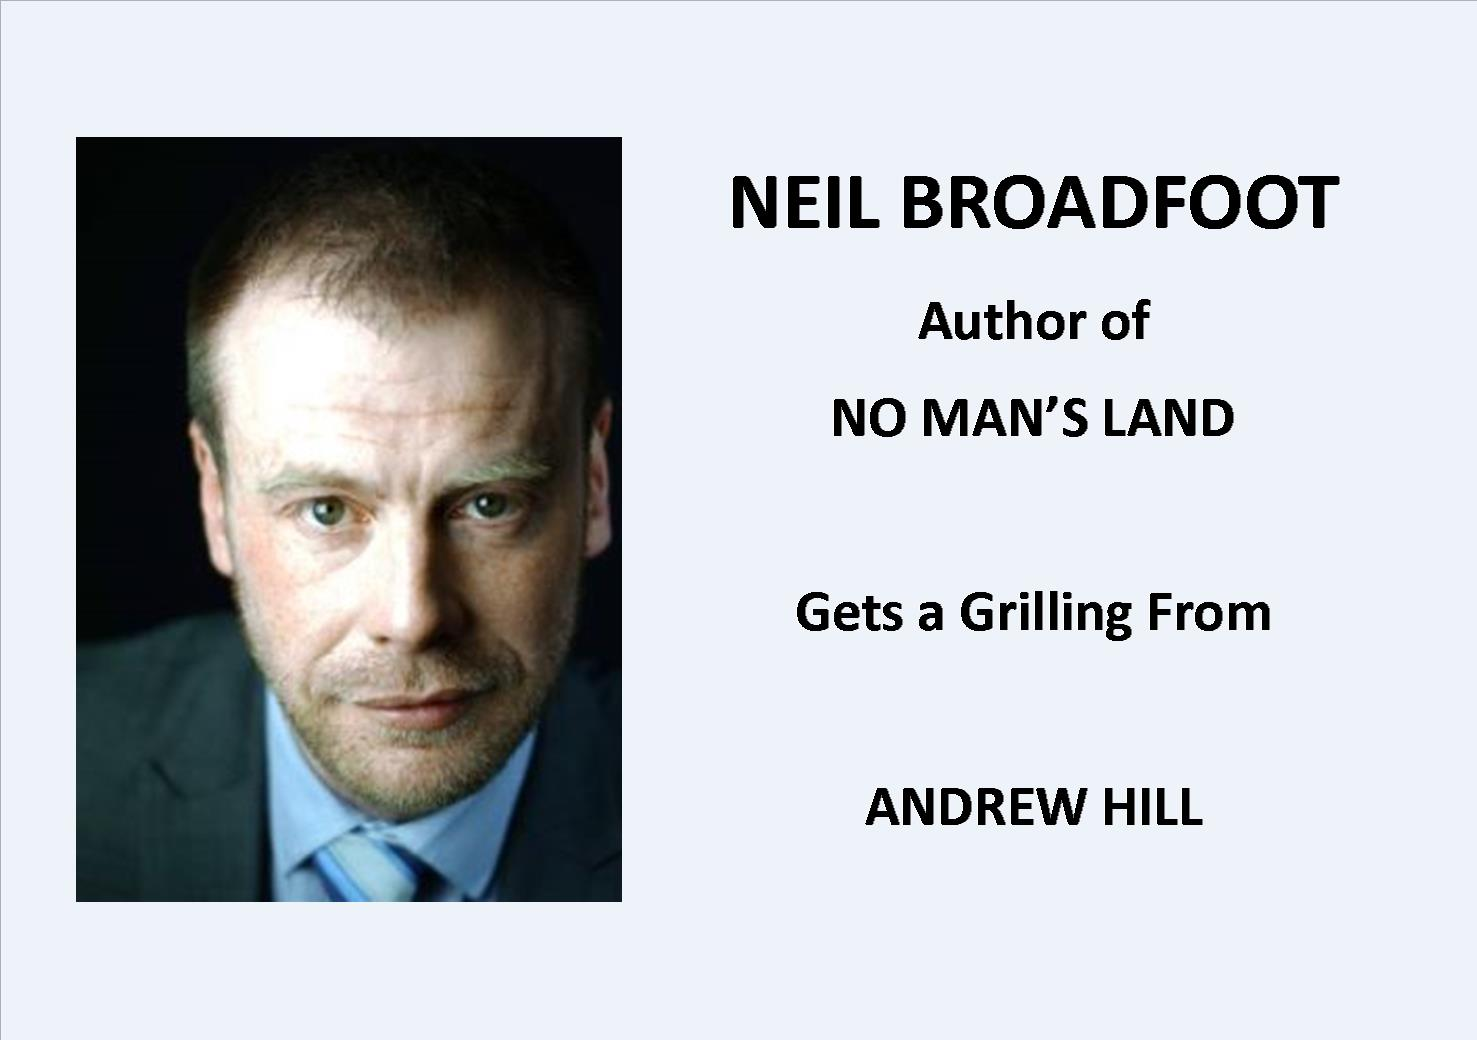 Q&A with NEIL BROADFOOT